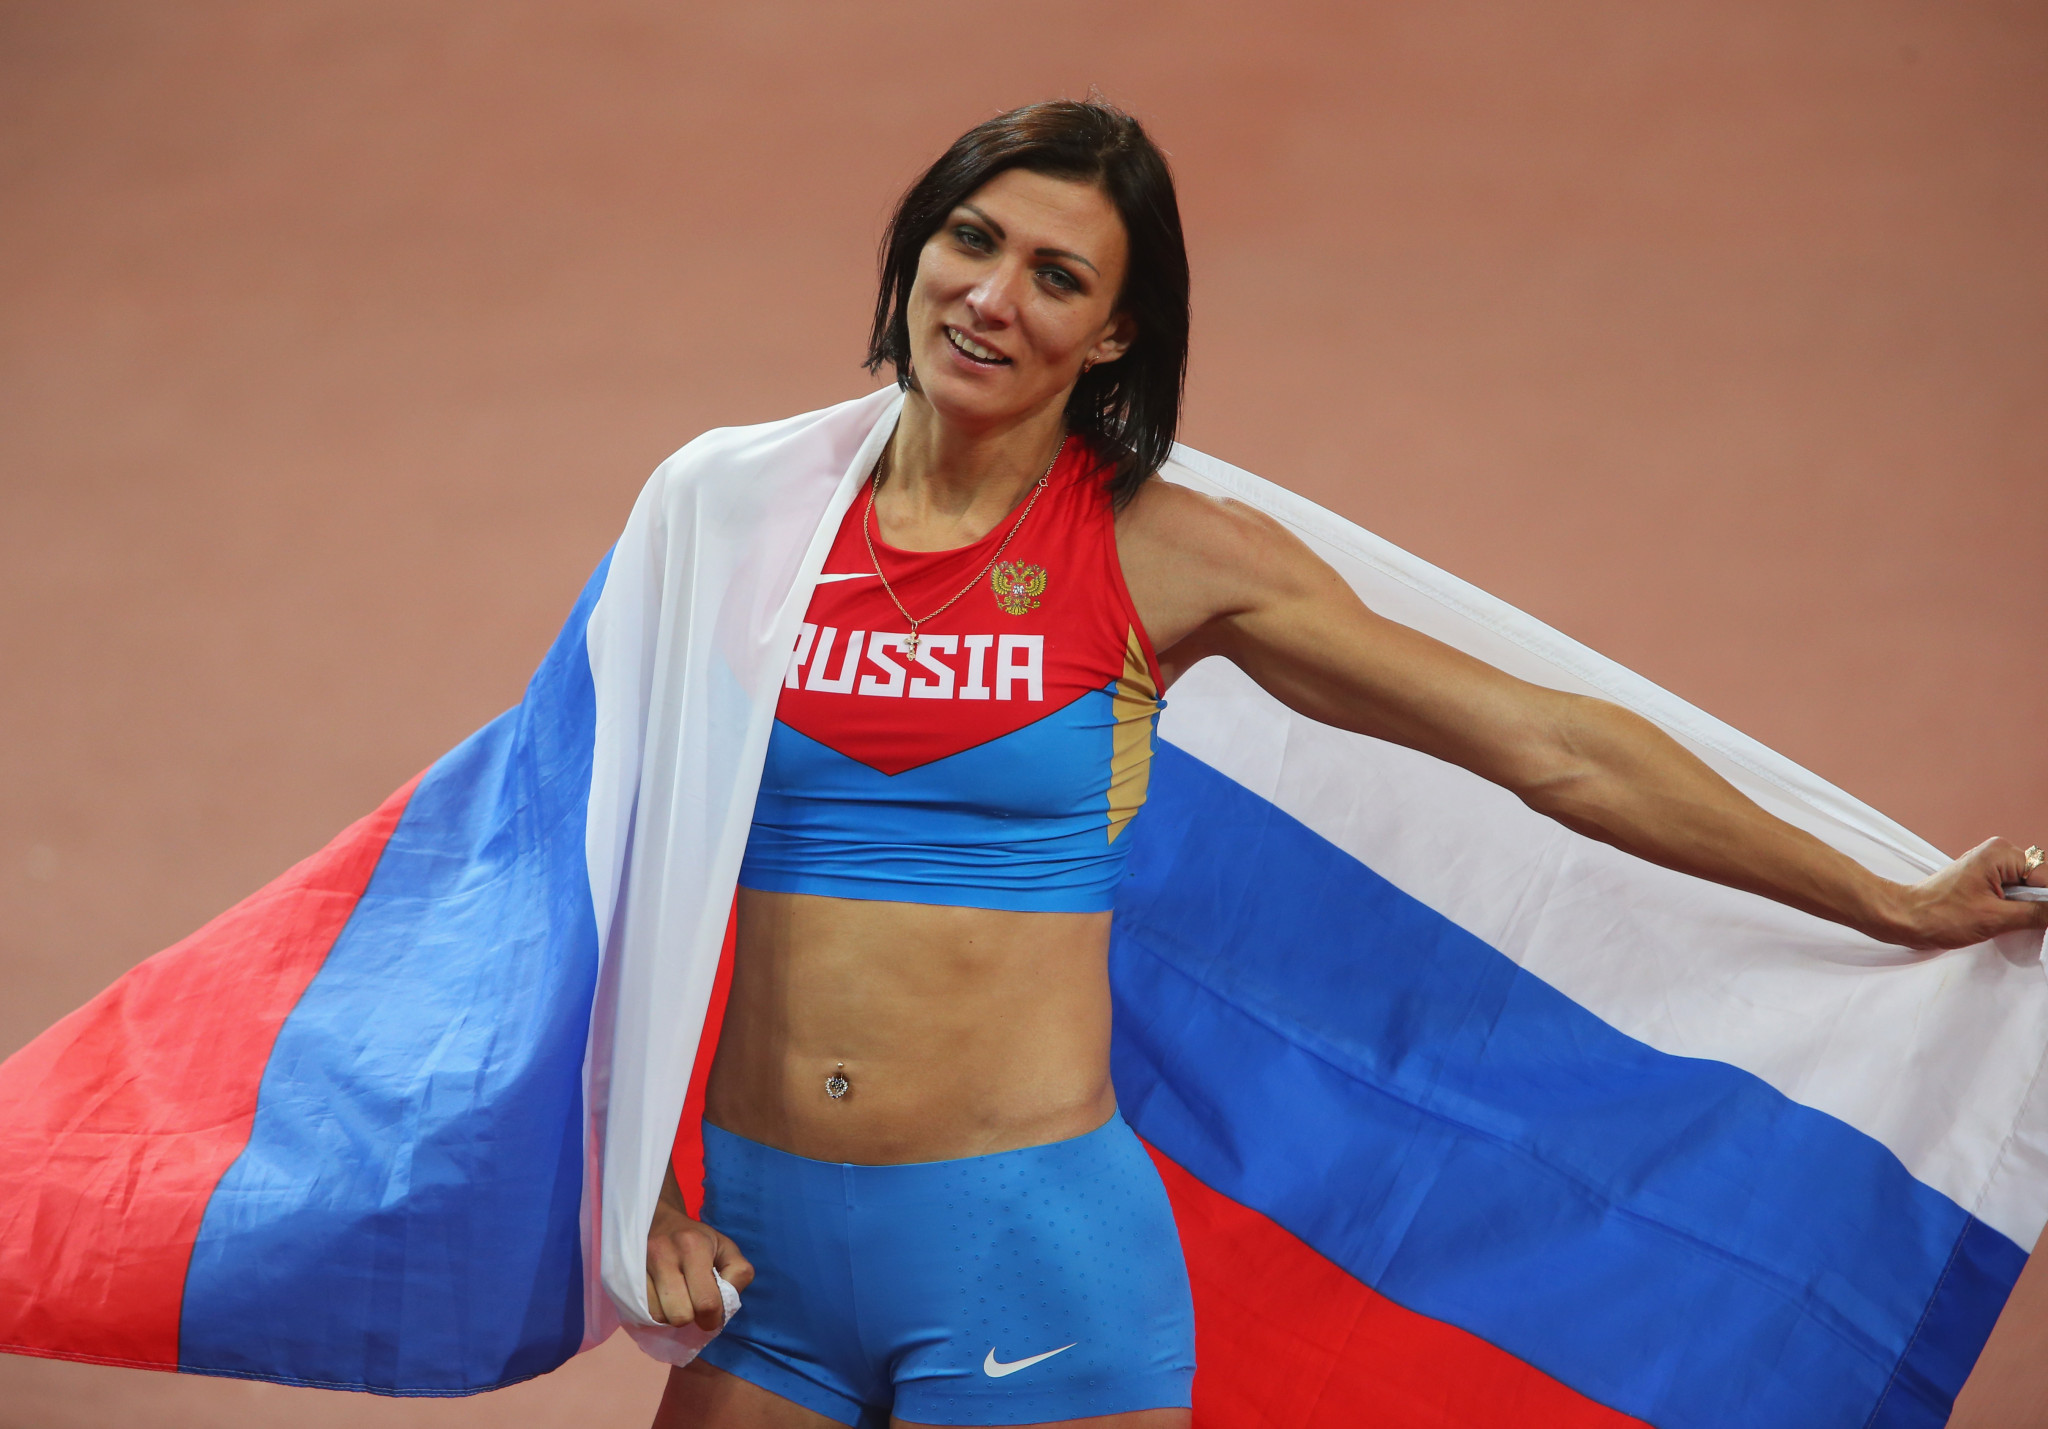 Russia's Natalya Antyukh, who won gold in the women's 400 metres hurdles at London 2012 has been charged with doping offences by the AIU ©Getty Images